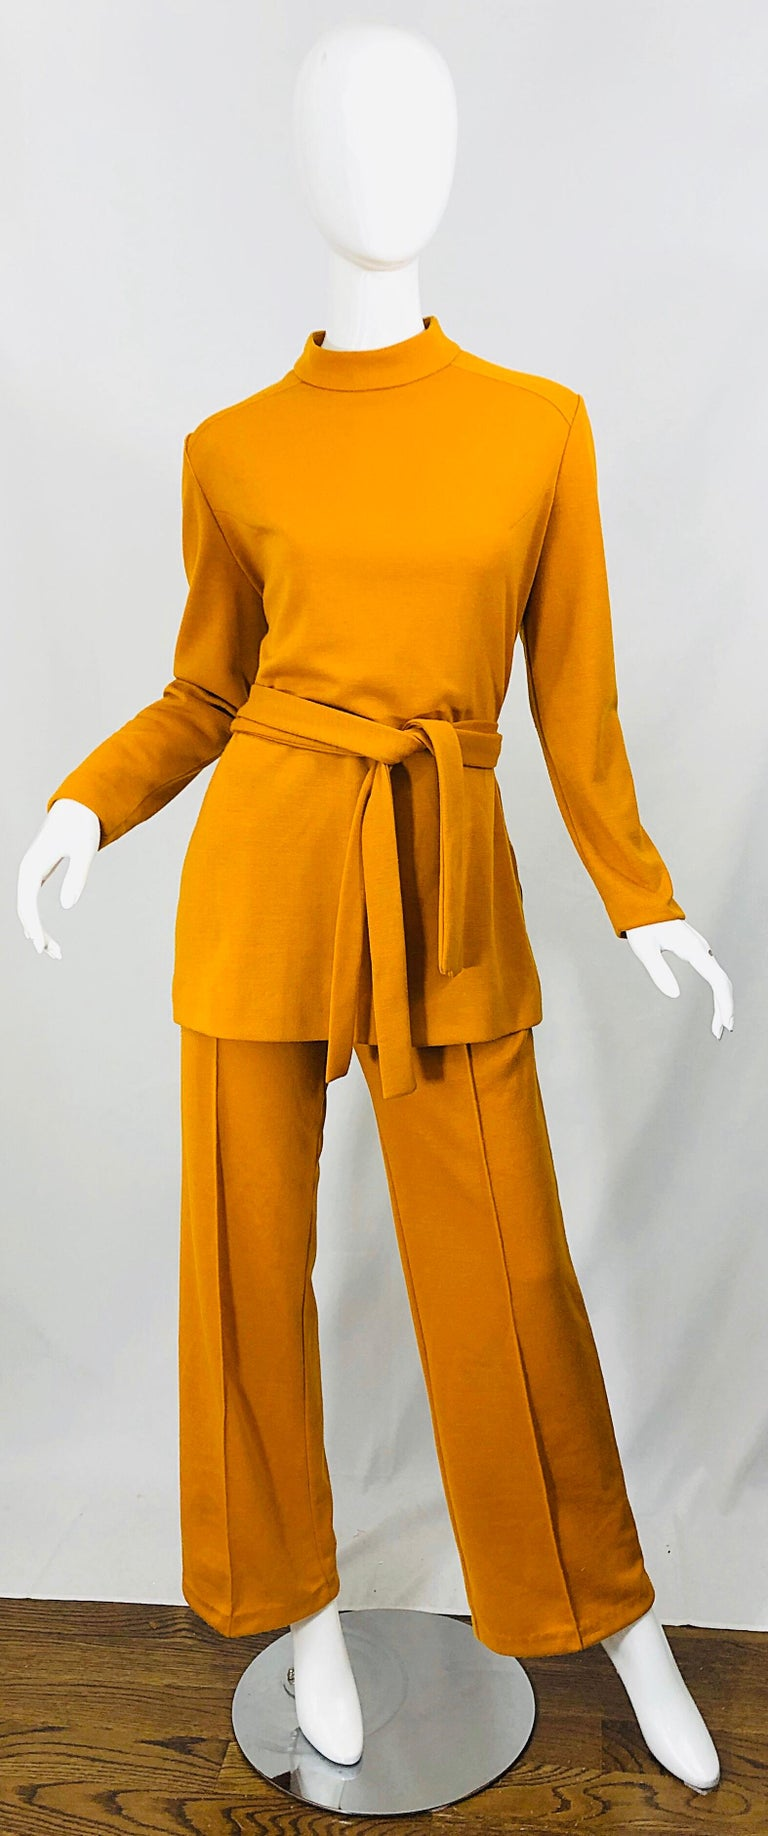 1970s Marigold Mustard Yellow Four Piece Vintage 70s Knit Shirt + Pants + Belt In Excellent Condition For Sale In Chicago, IL